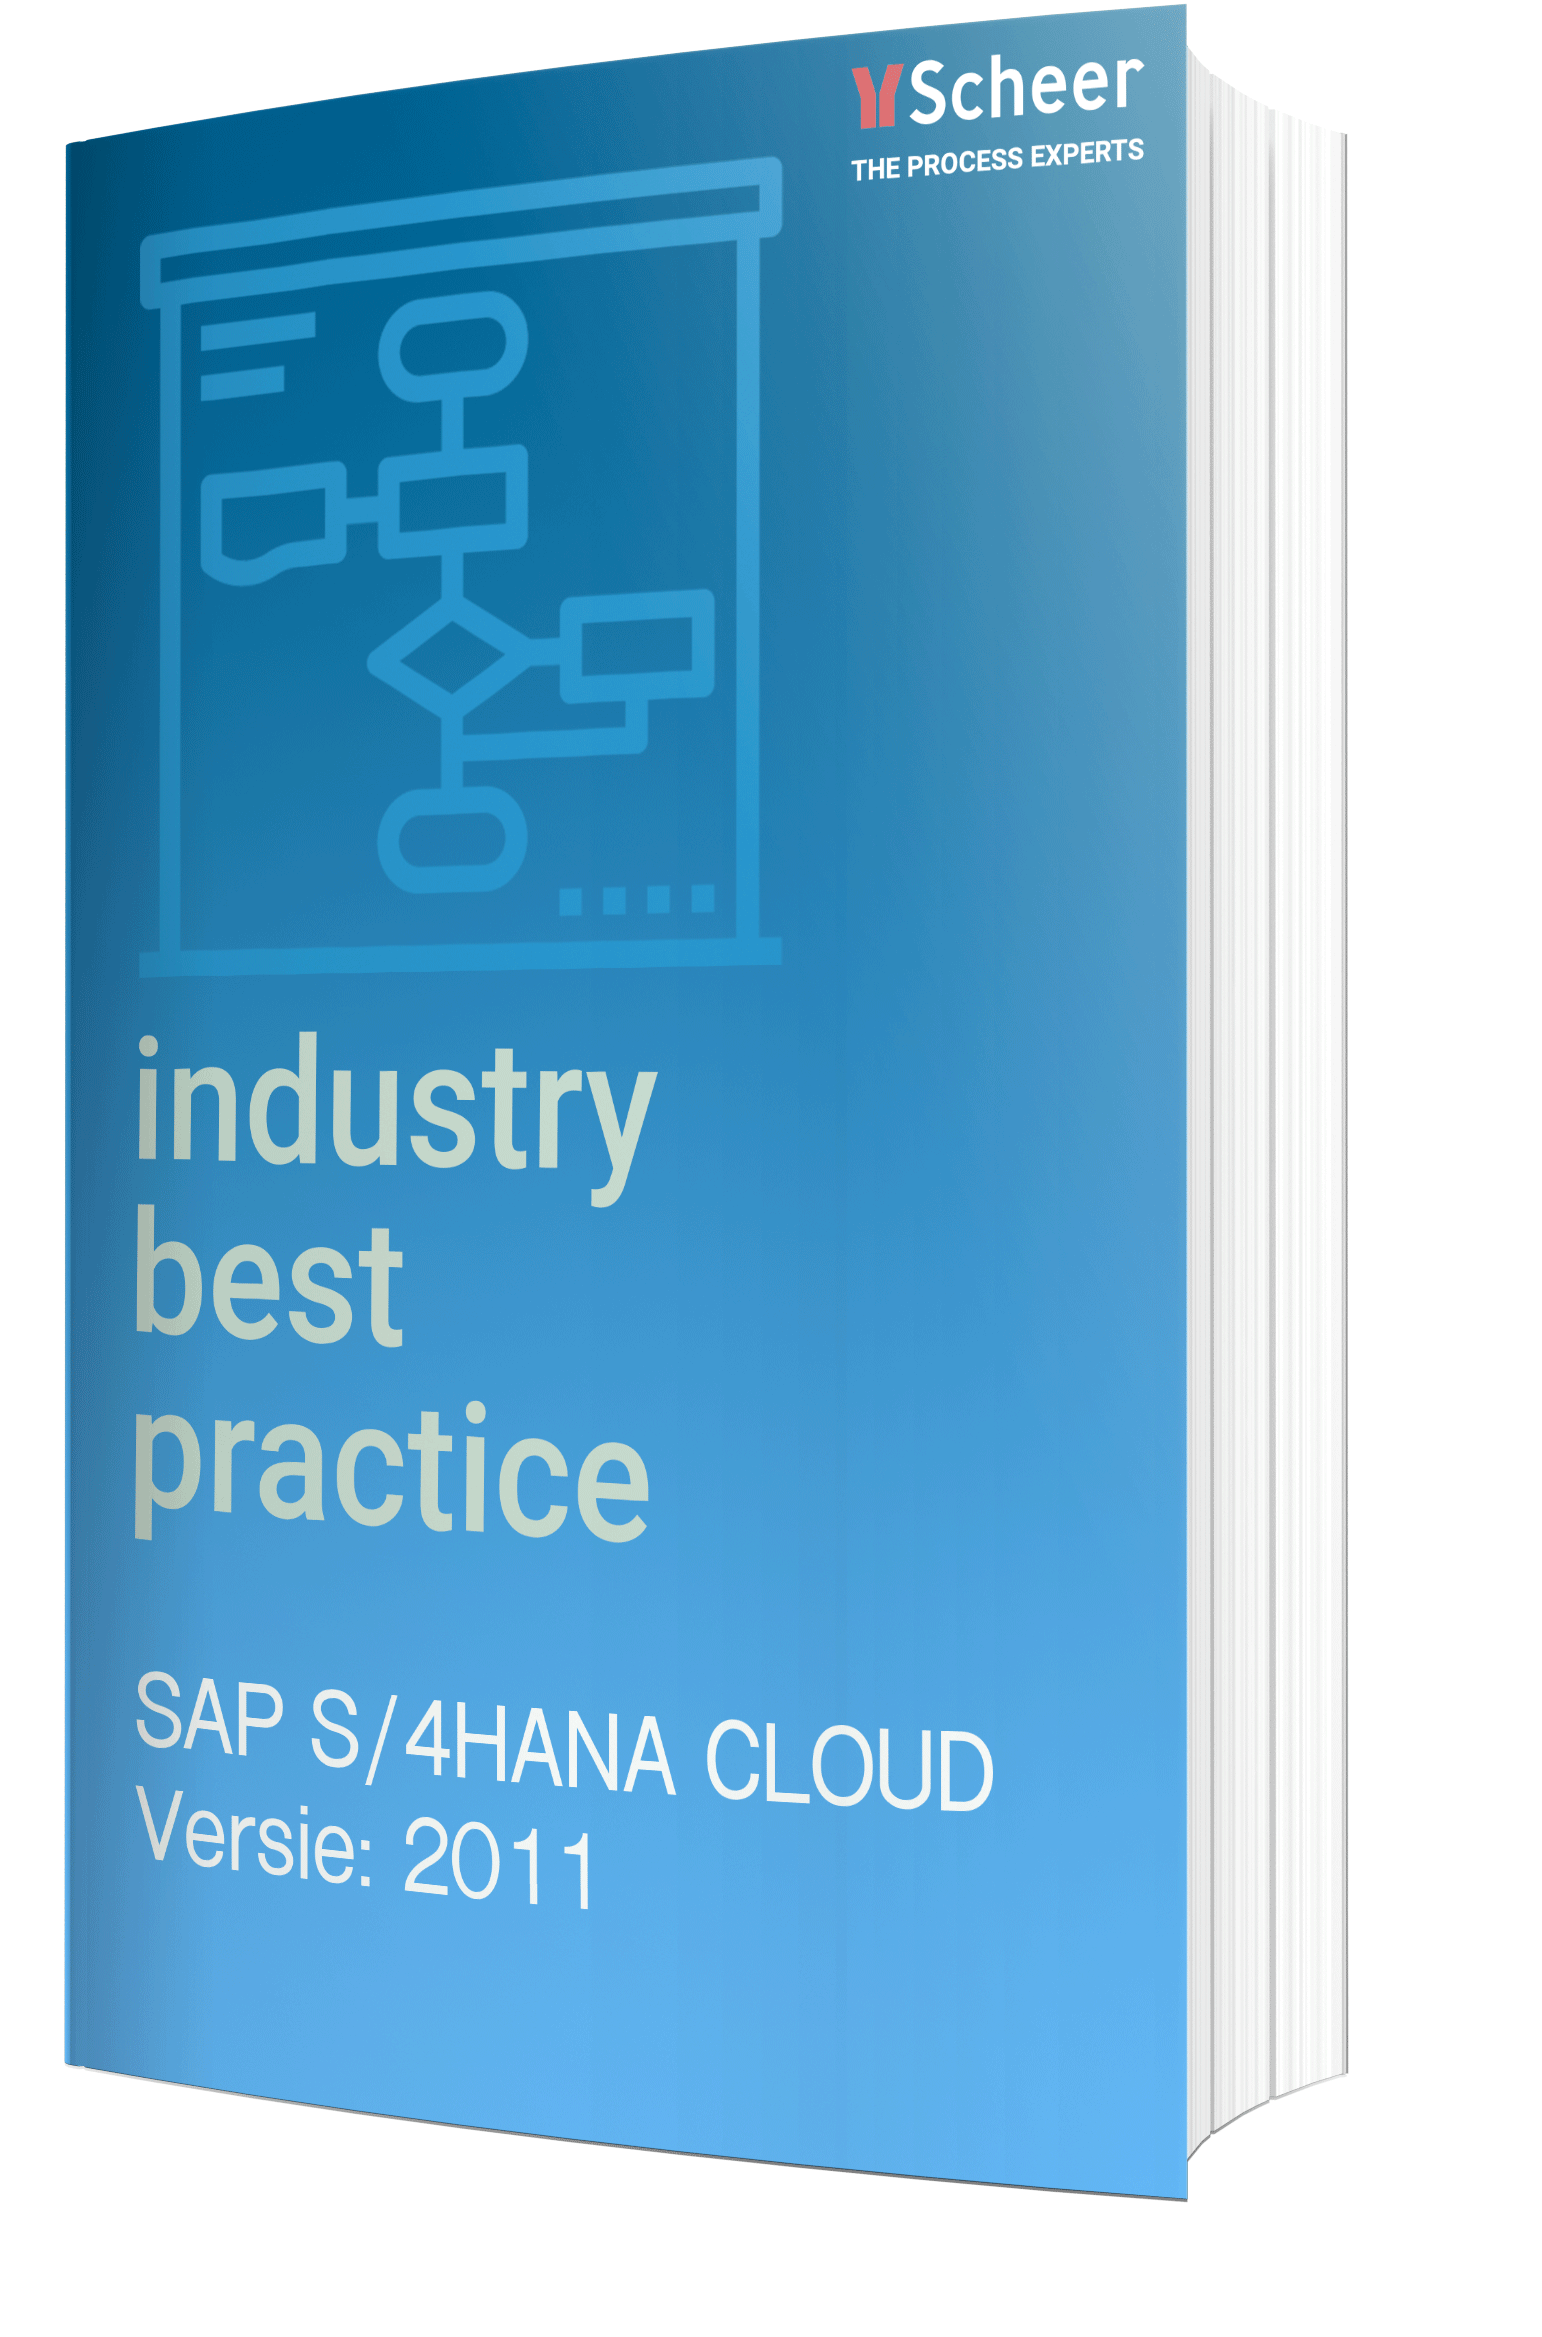 Best practices SAP S/4HANA Cloud 2011